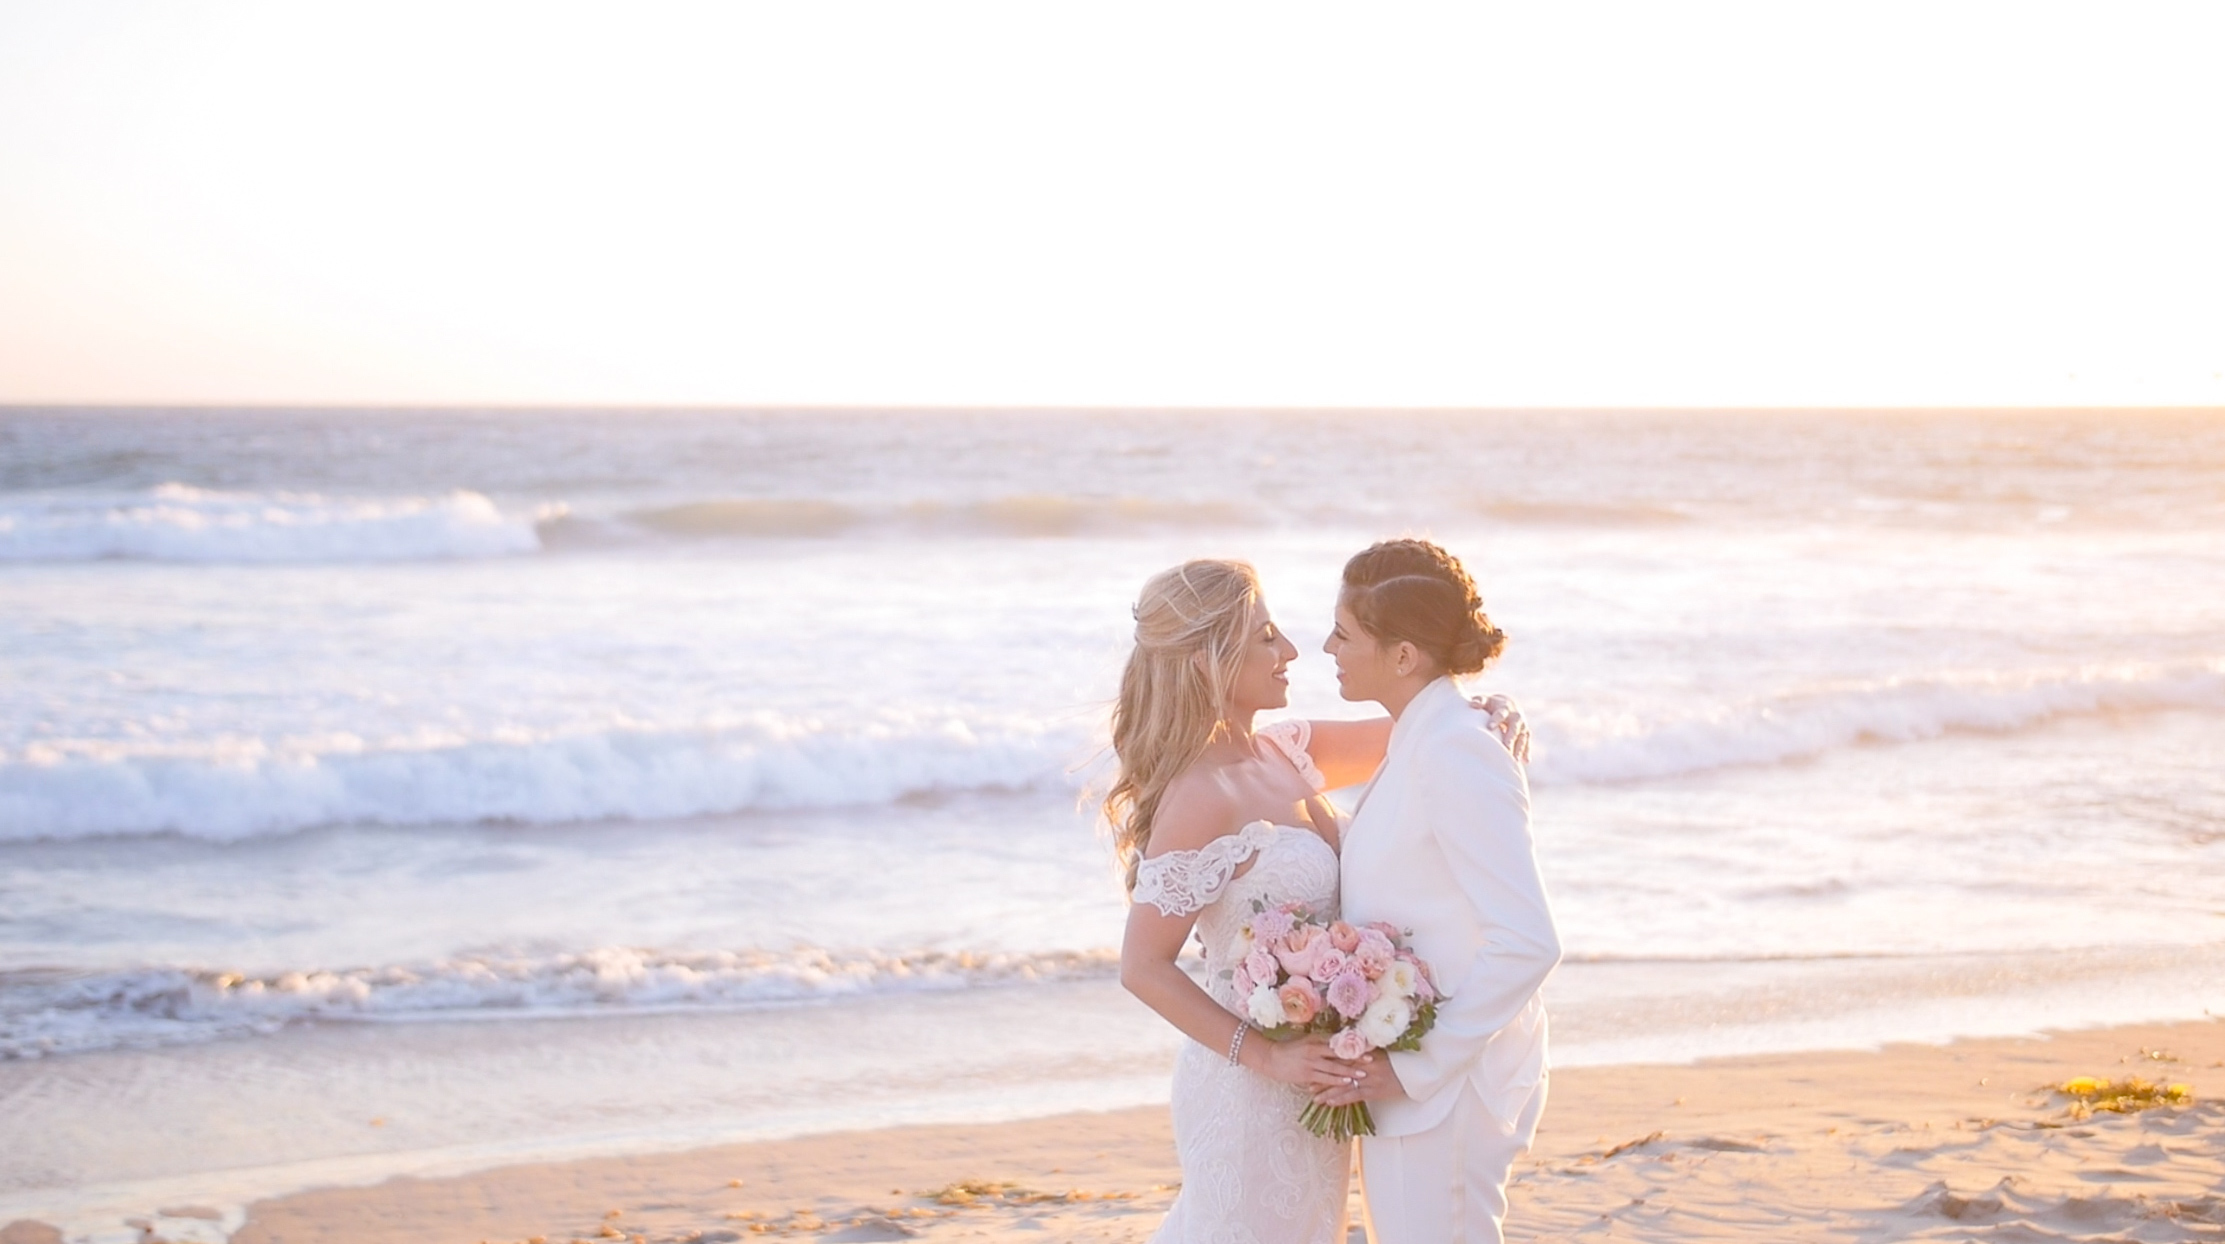 Samantha  + Ashley | Malibu, California | West Malibu Beach Club